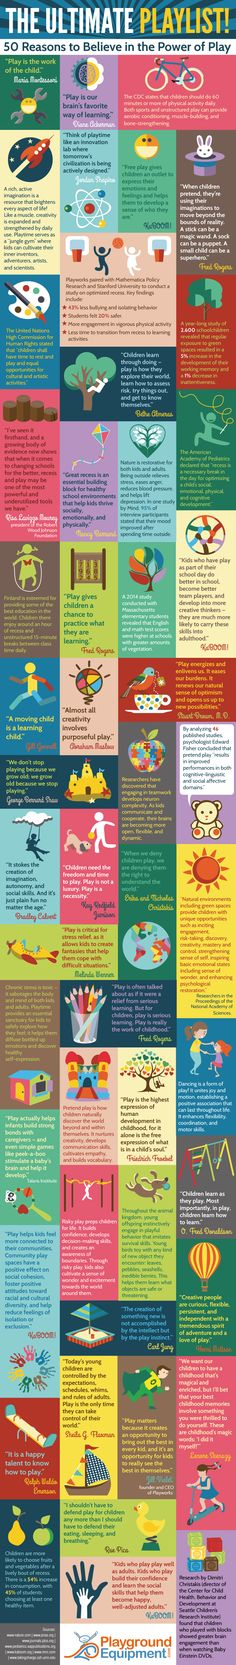 50 Reasons to Believe in the Power of Play #Infographic